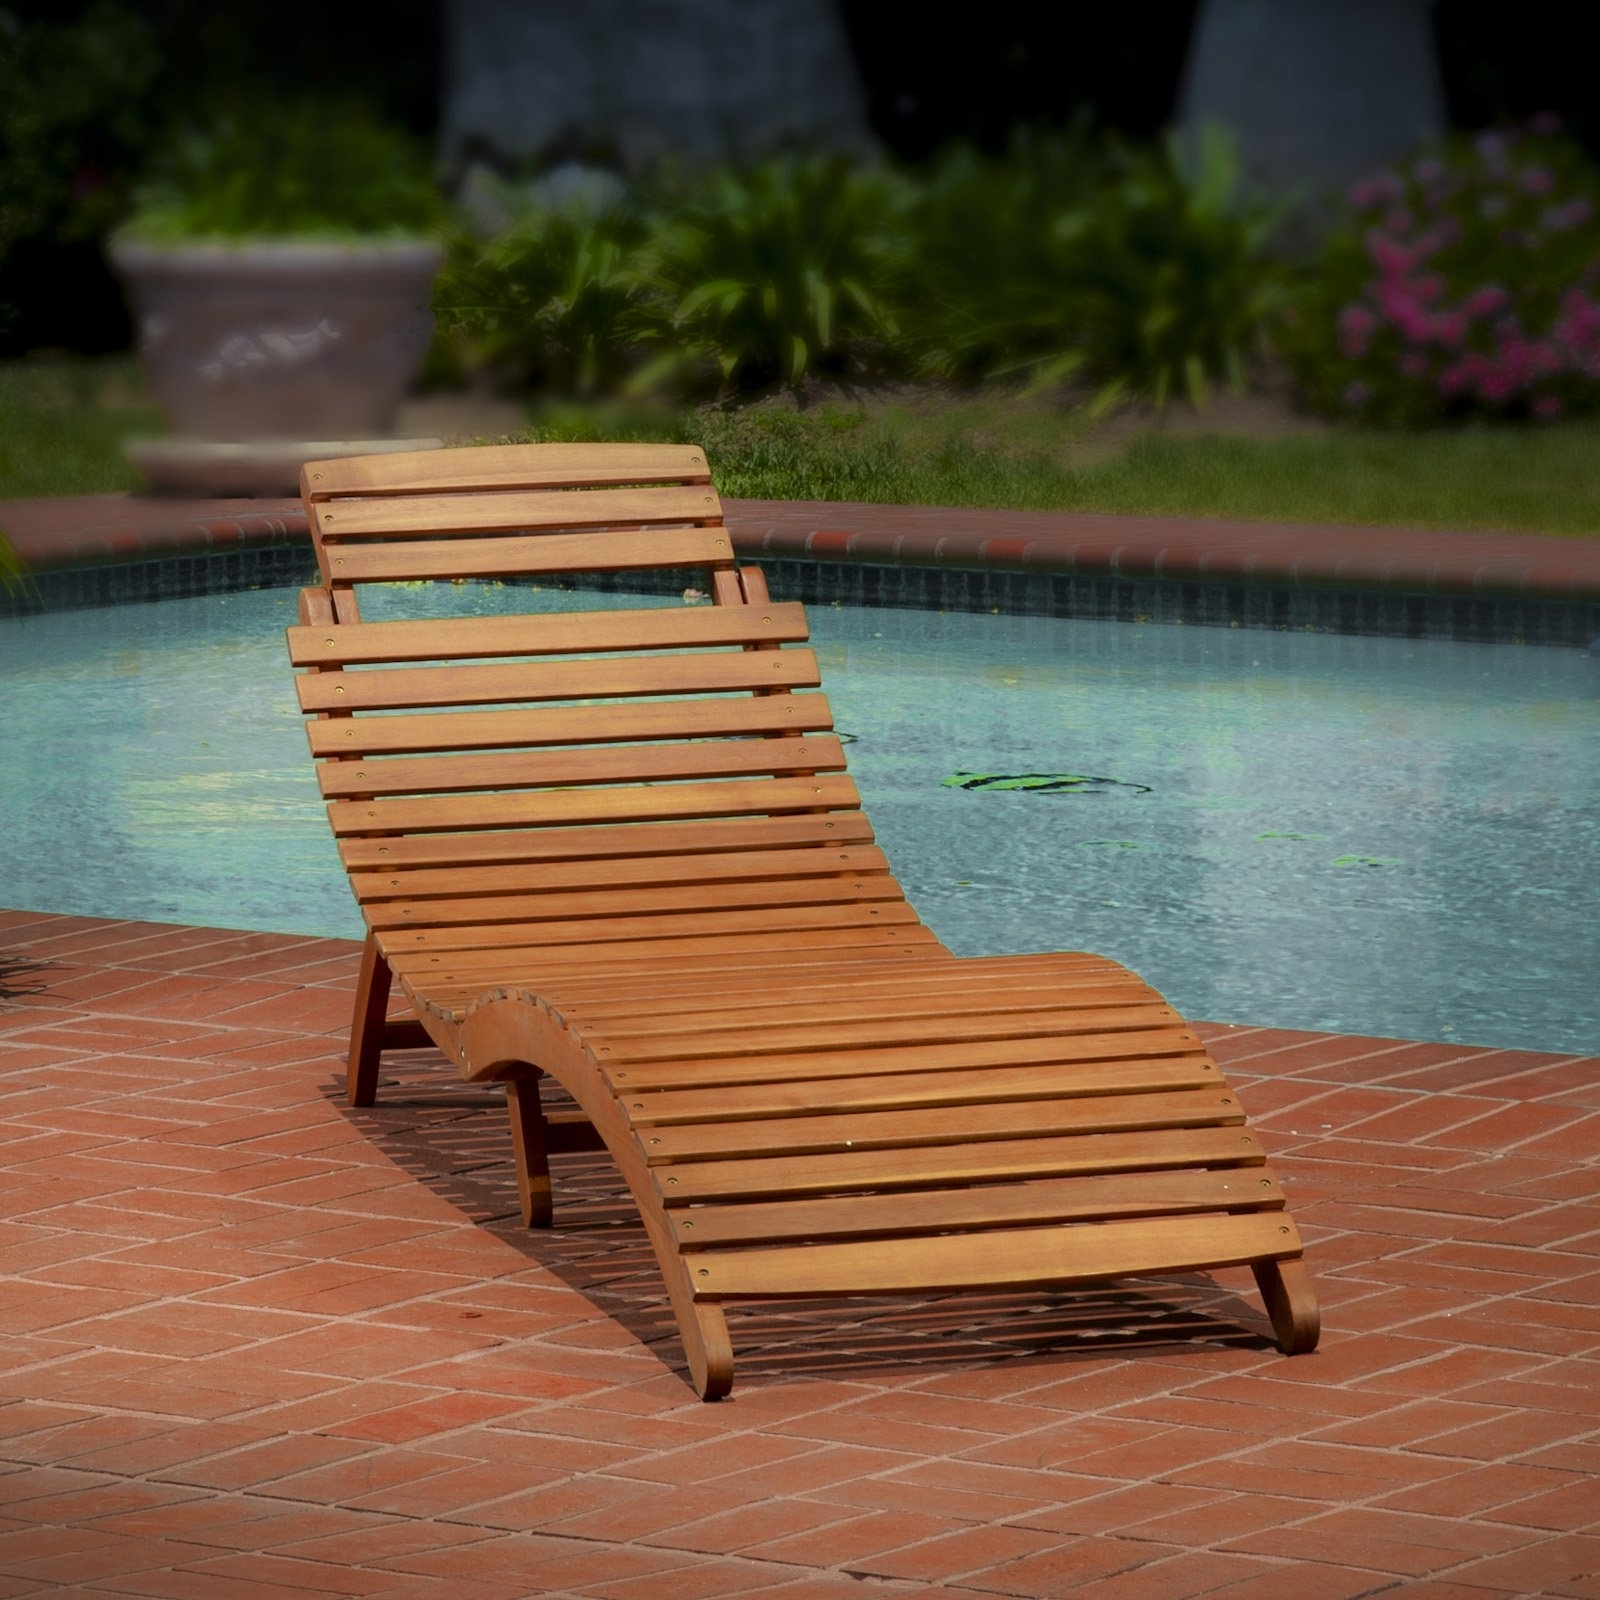 Fashionable Wood Chaise Lounge Chairs Intended For Lahaina Wood Outdoor Chaise Lounge – Walmart (View 13 of 15)